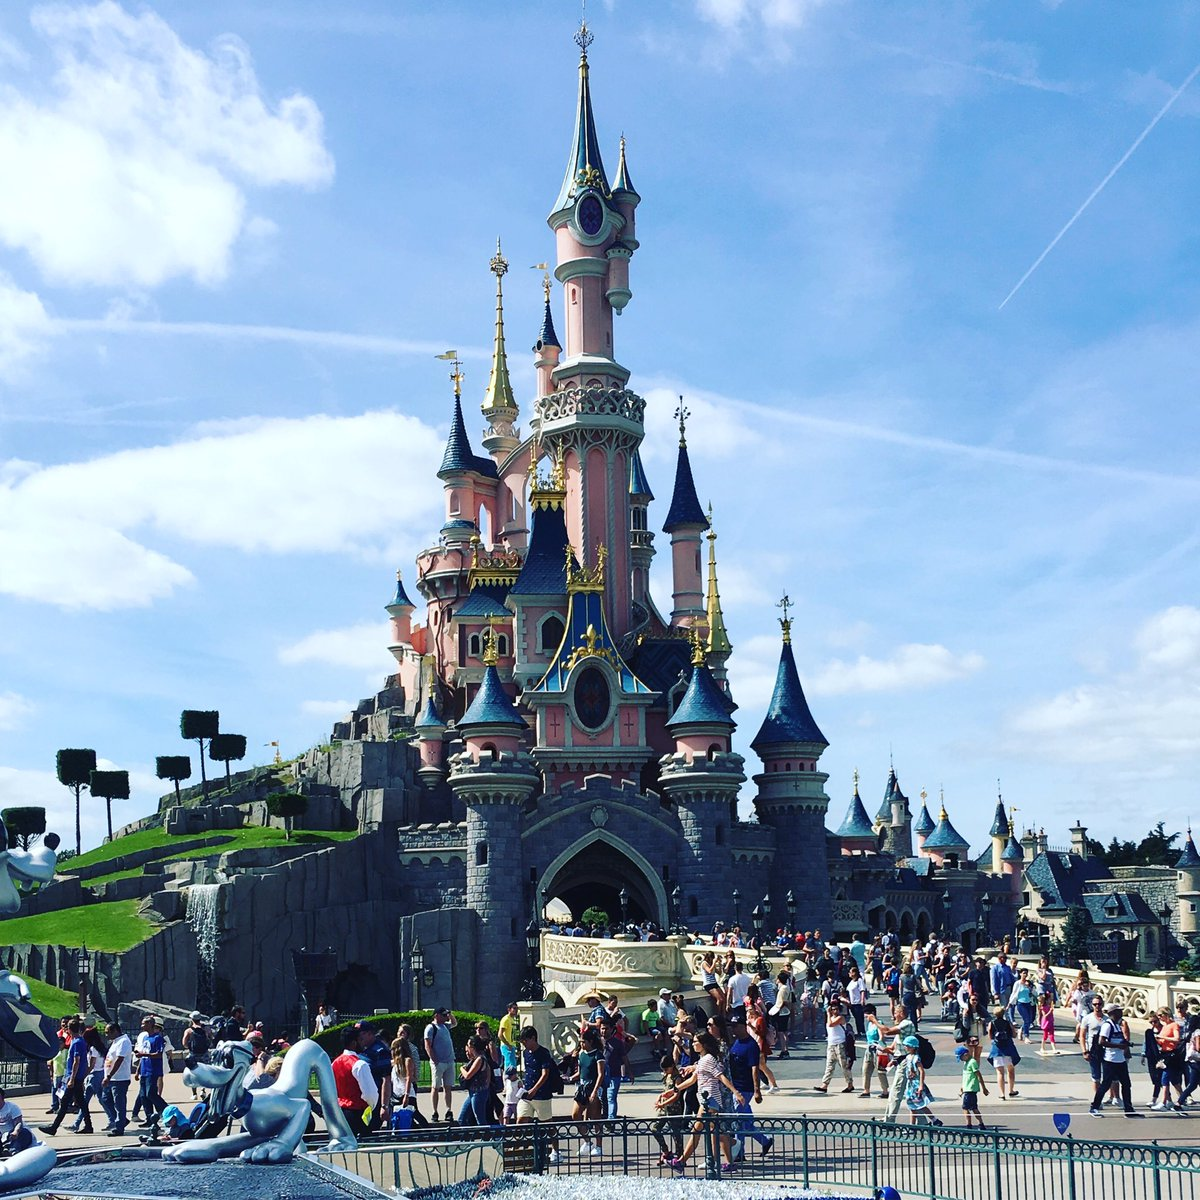 Disneyland Paris ???? Magnifique! https://t.co/zsxa5SUPdr